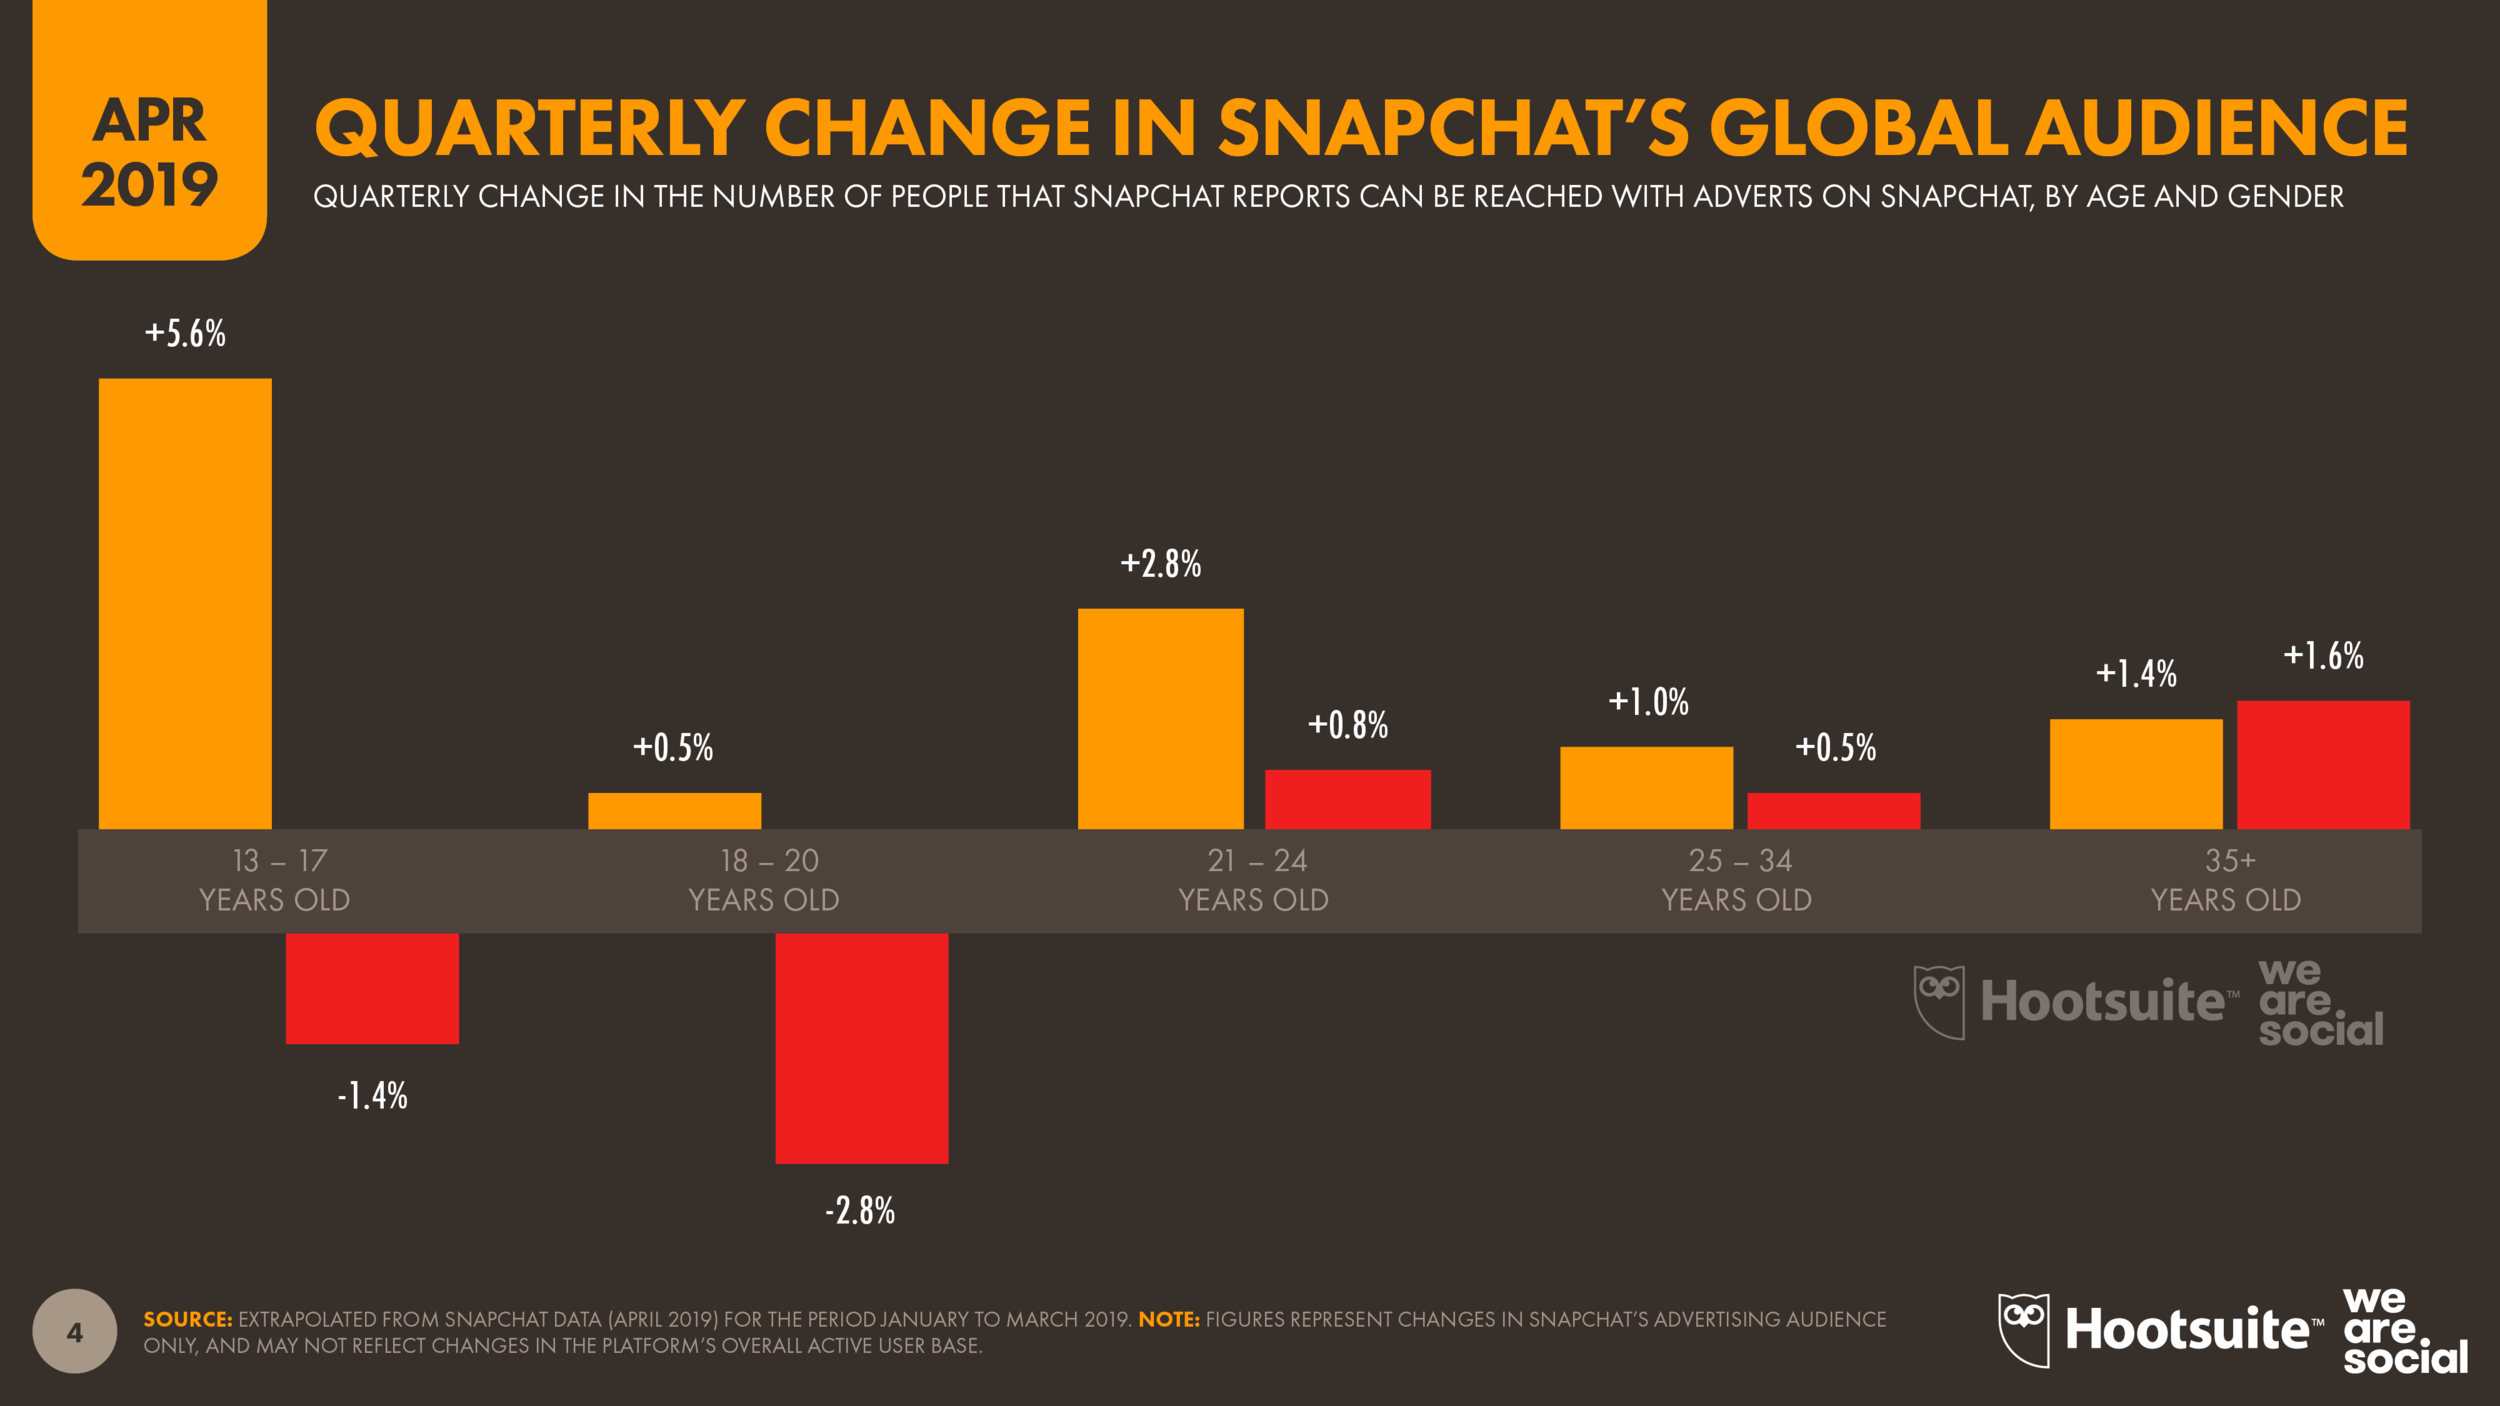 Quarterly Change in Snapchat Advertising Audience by Age Group and Gender April 2019 DataReportal